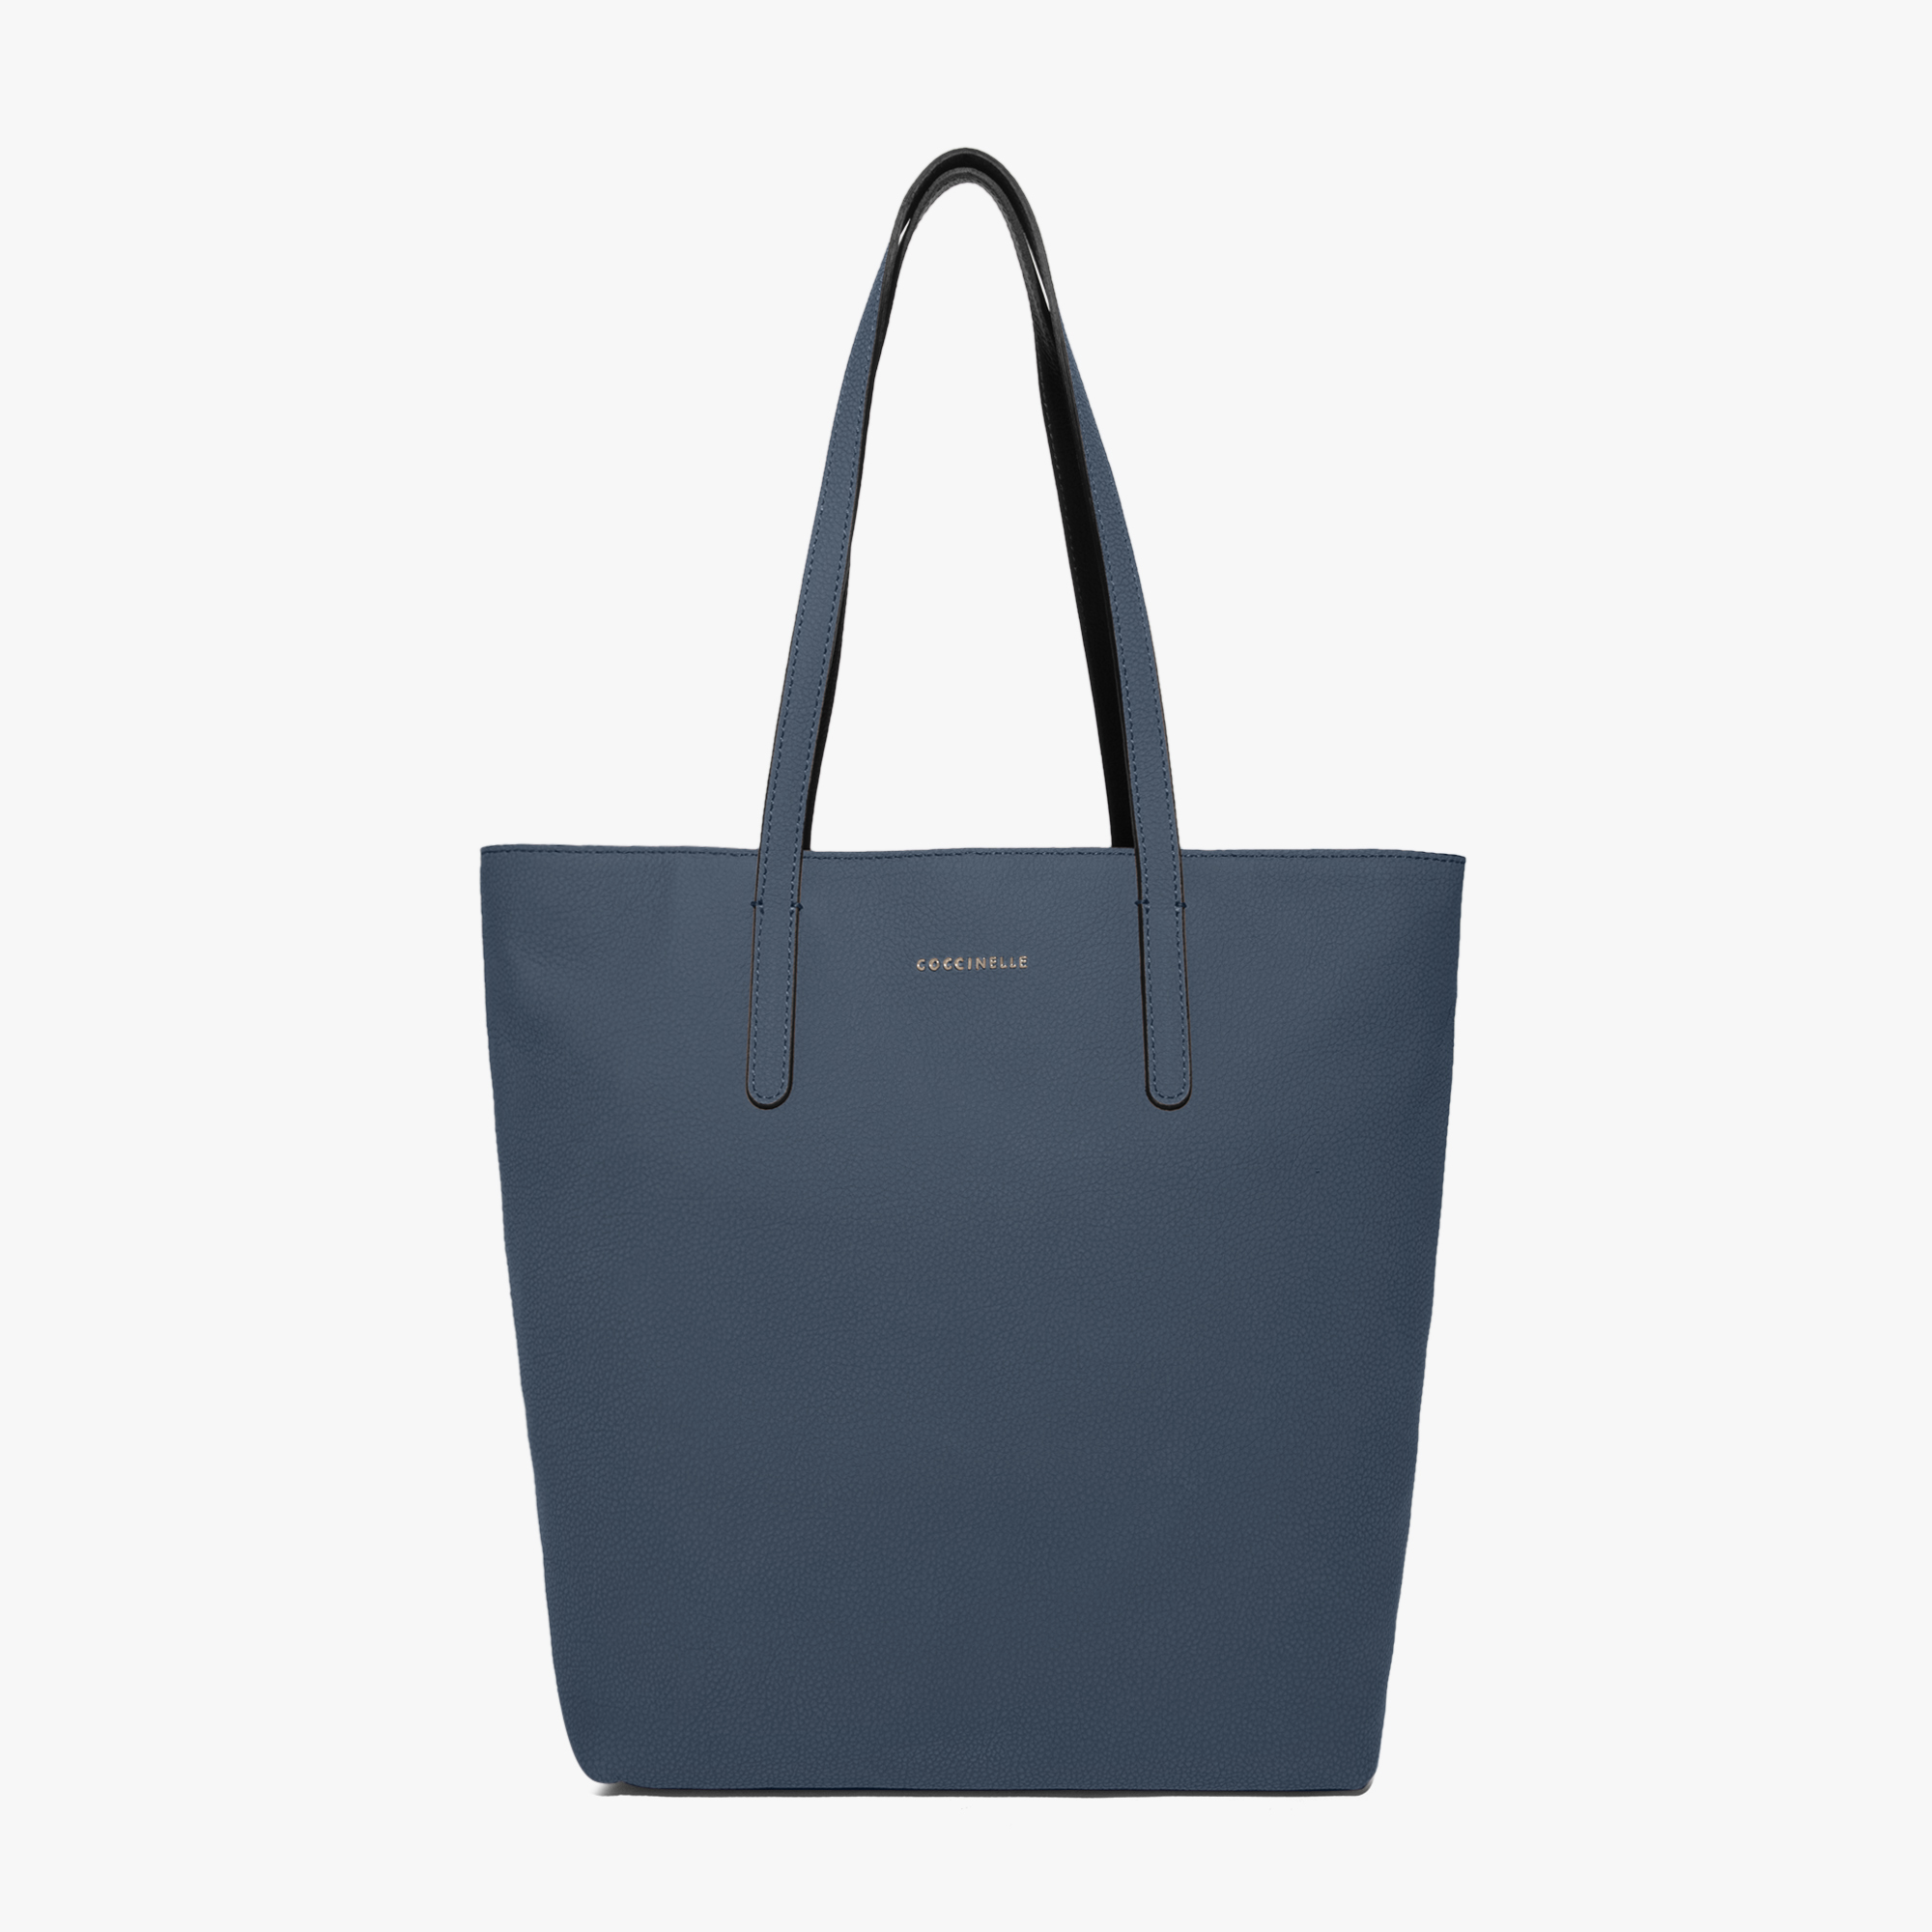 Leather shopping tote